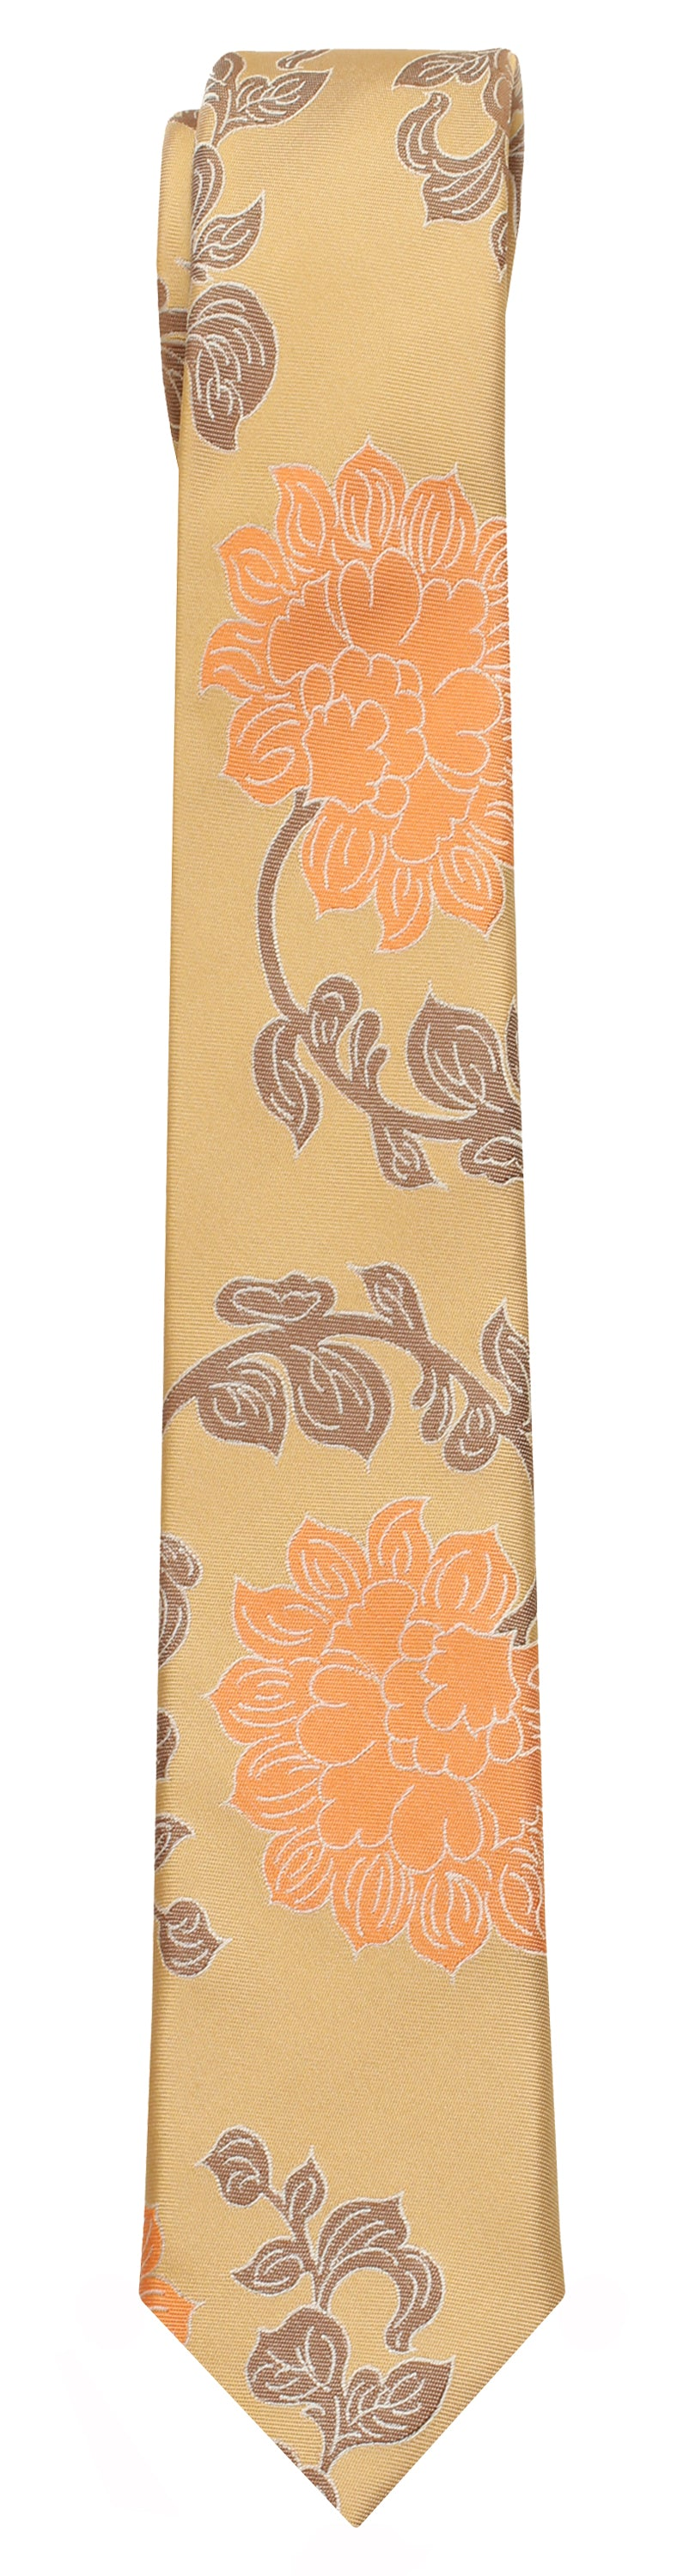 Mimi Fong Lotus Tie in Gold